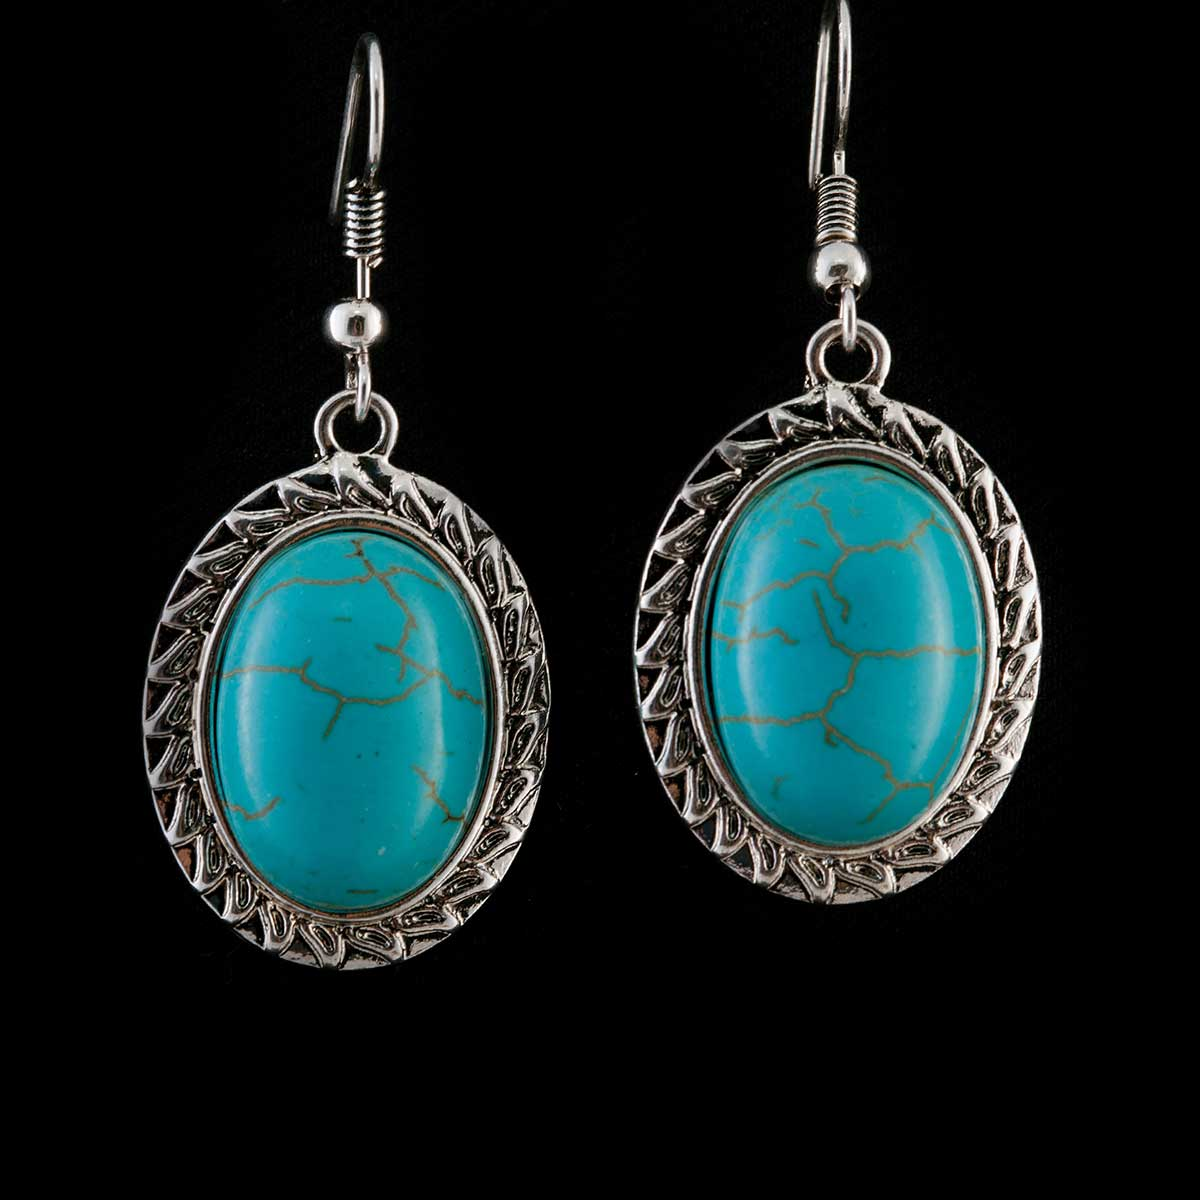 Turquoise Oval Stone Earrings 50sp